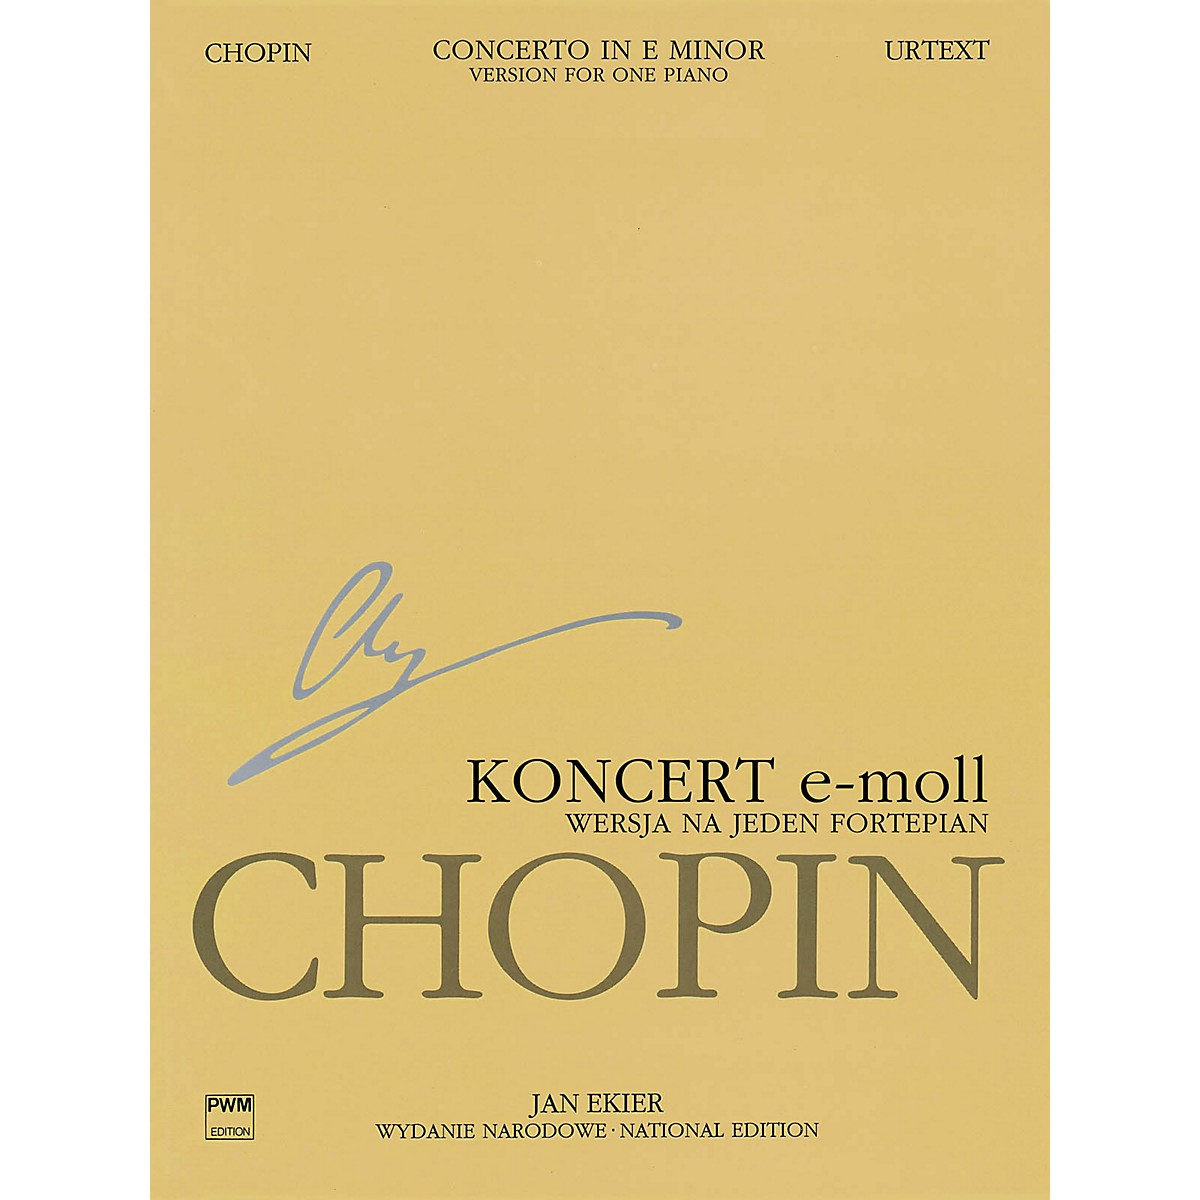 PWM Concerto No. 1 in E Minor Op. 11 - Version for One Piano PWM Softcover by Chopin Edited by Jan Ekier